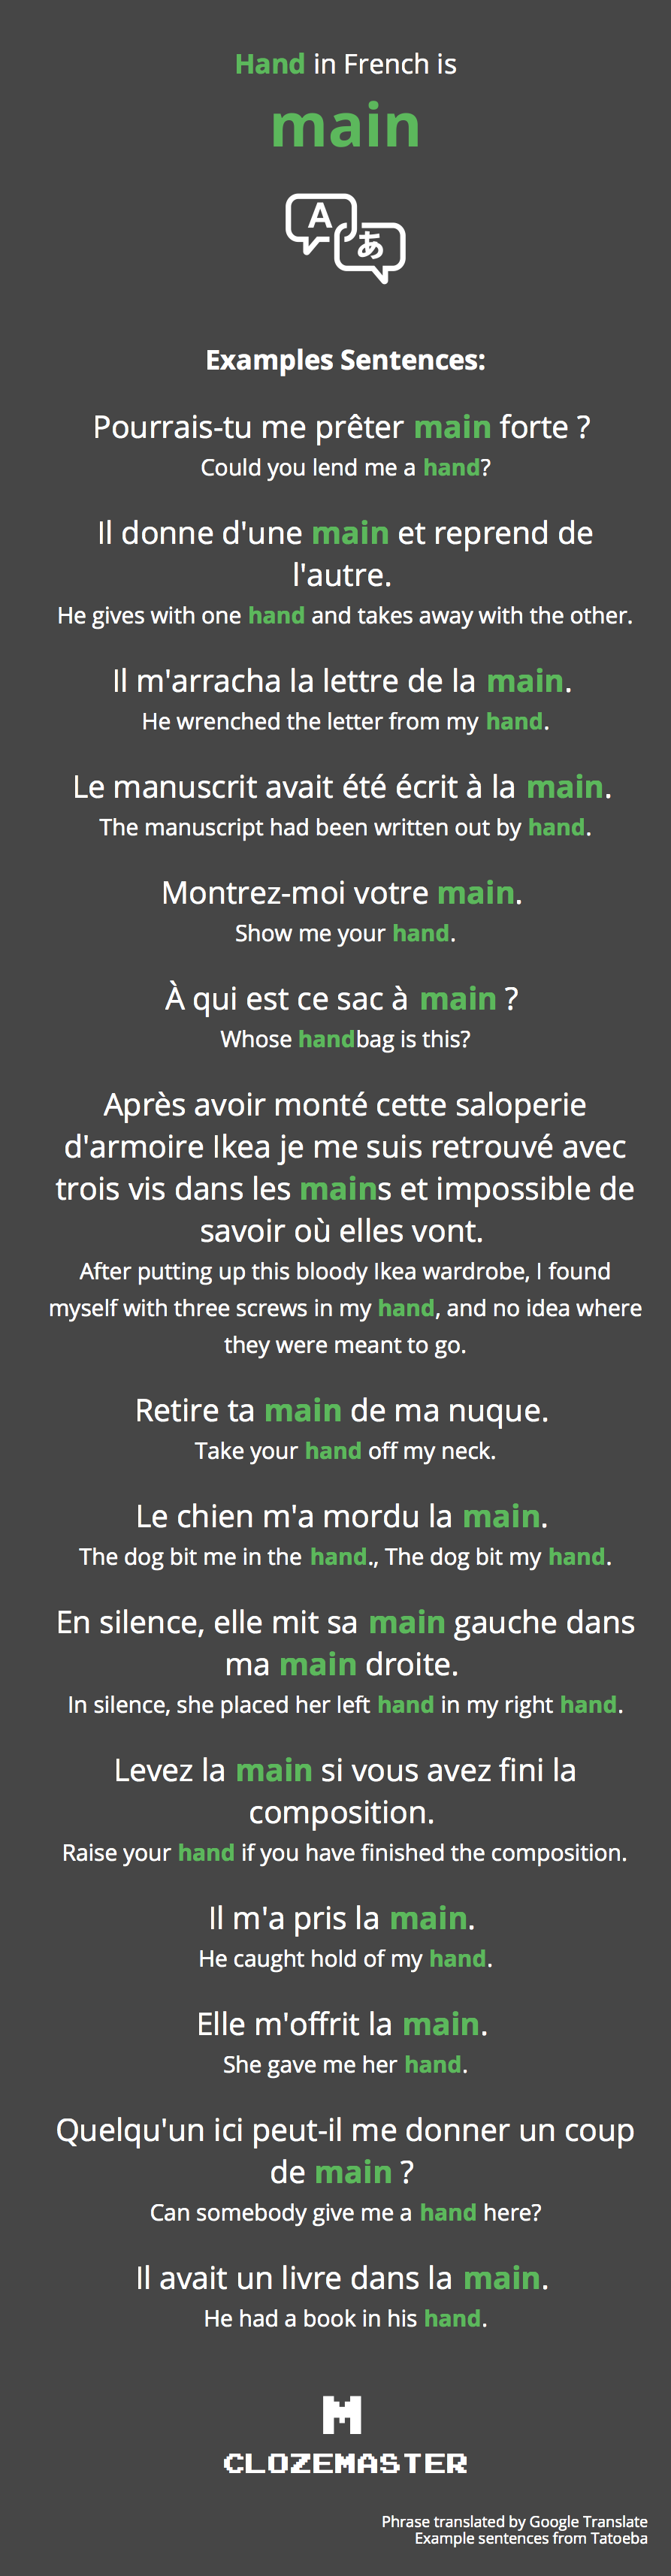 How to say hand in french clozemaster hand in french translation and example sentences solutioingenieria